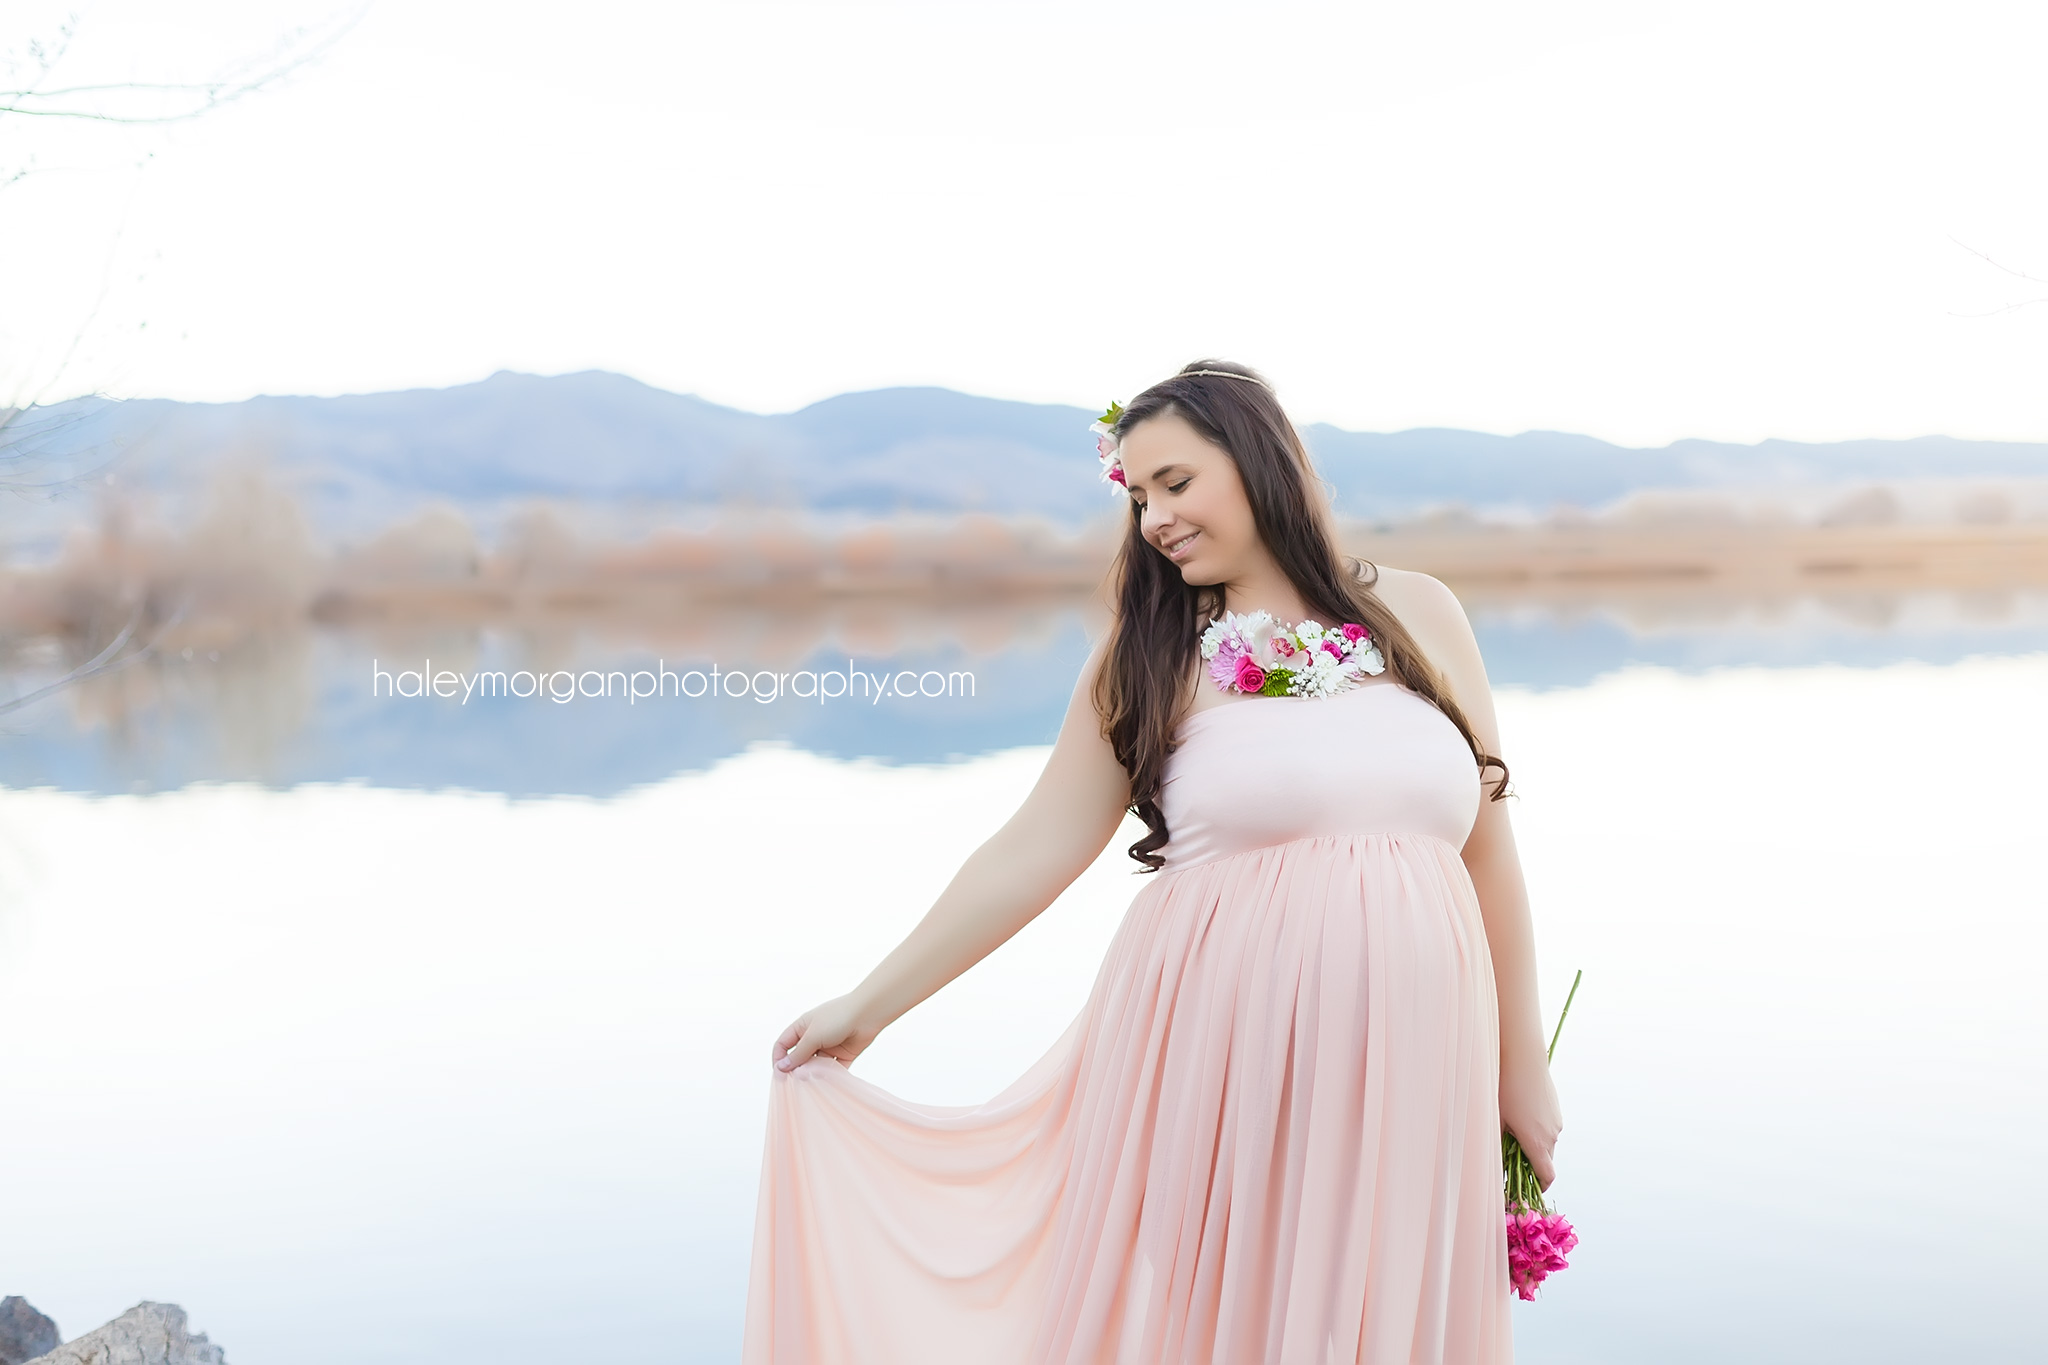 Boulder Maternity Photographer, Boulder Maternity Session, Coot Lake, Coot Lake Boulder, Coot Lake Maternity Session, Coot Lake Photography, Denver Maternity Photographer, Denver Maternity Session, Denver Photographer, Haley Morgan Photography, Leah Maria Couture, Stiletto Events, Stiletto Events Denver, Oakes Fields Floral, Oakes Fields Floral Denver, Cydney Johnson, Flower Crowns, Flower Necklace, Floral Crown, Floral Necklace, Floral Crown Maternity Photoshoot, Floral Crown Maternity, Denver Wedding Photographer, Denver Engagement Photographer, Maternity Session Balloons, Balloons Photoshoot